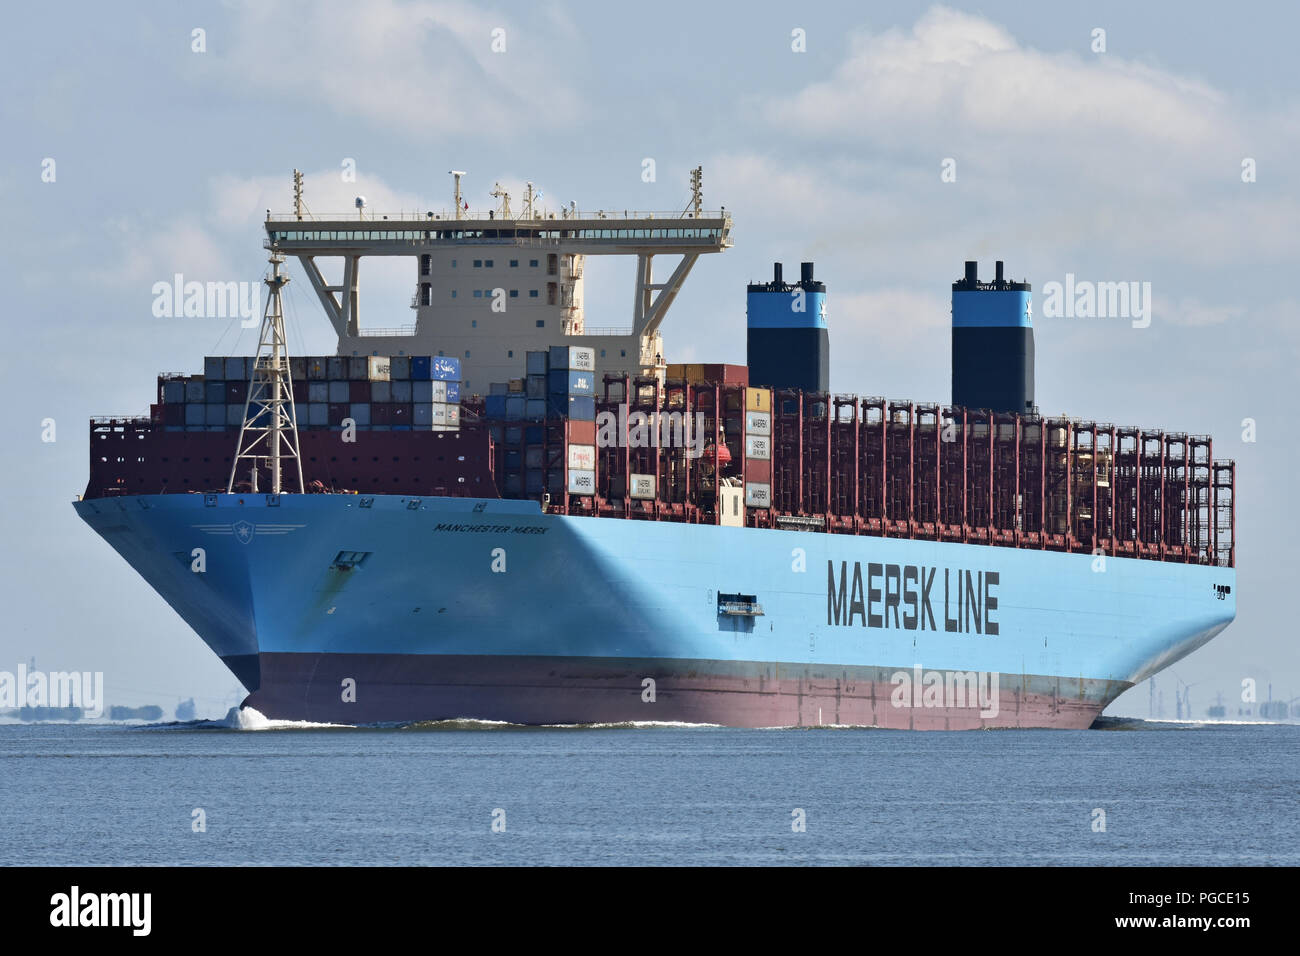 Manchester Maersk Stock Photo